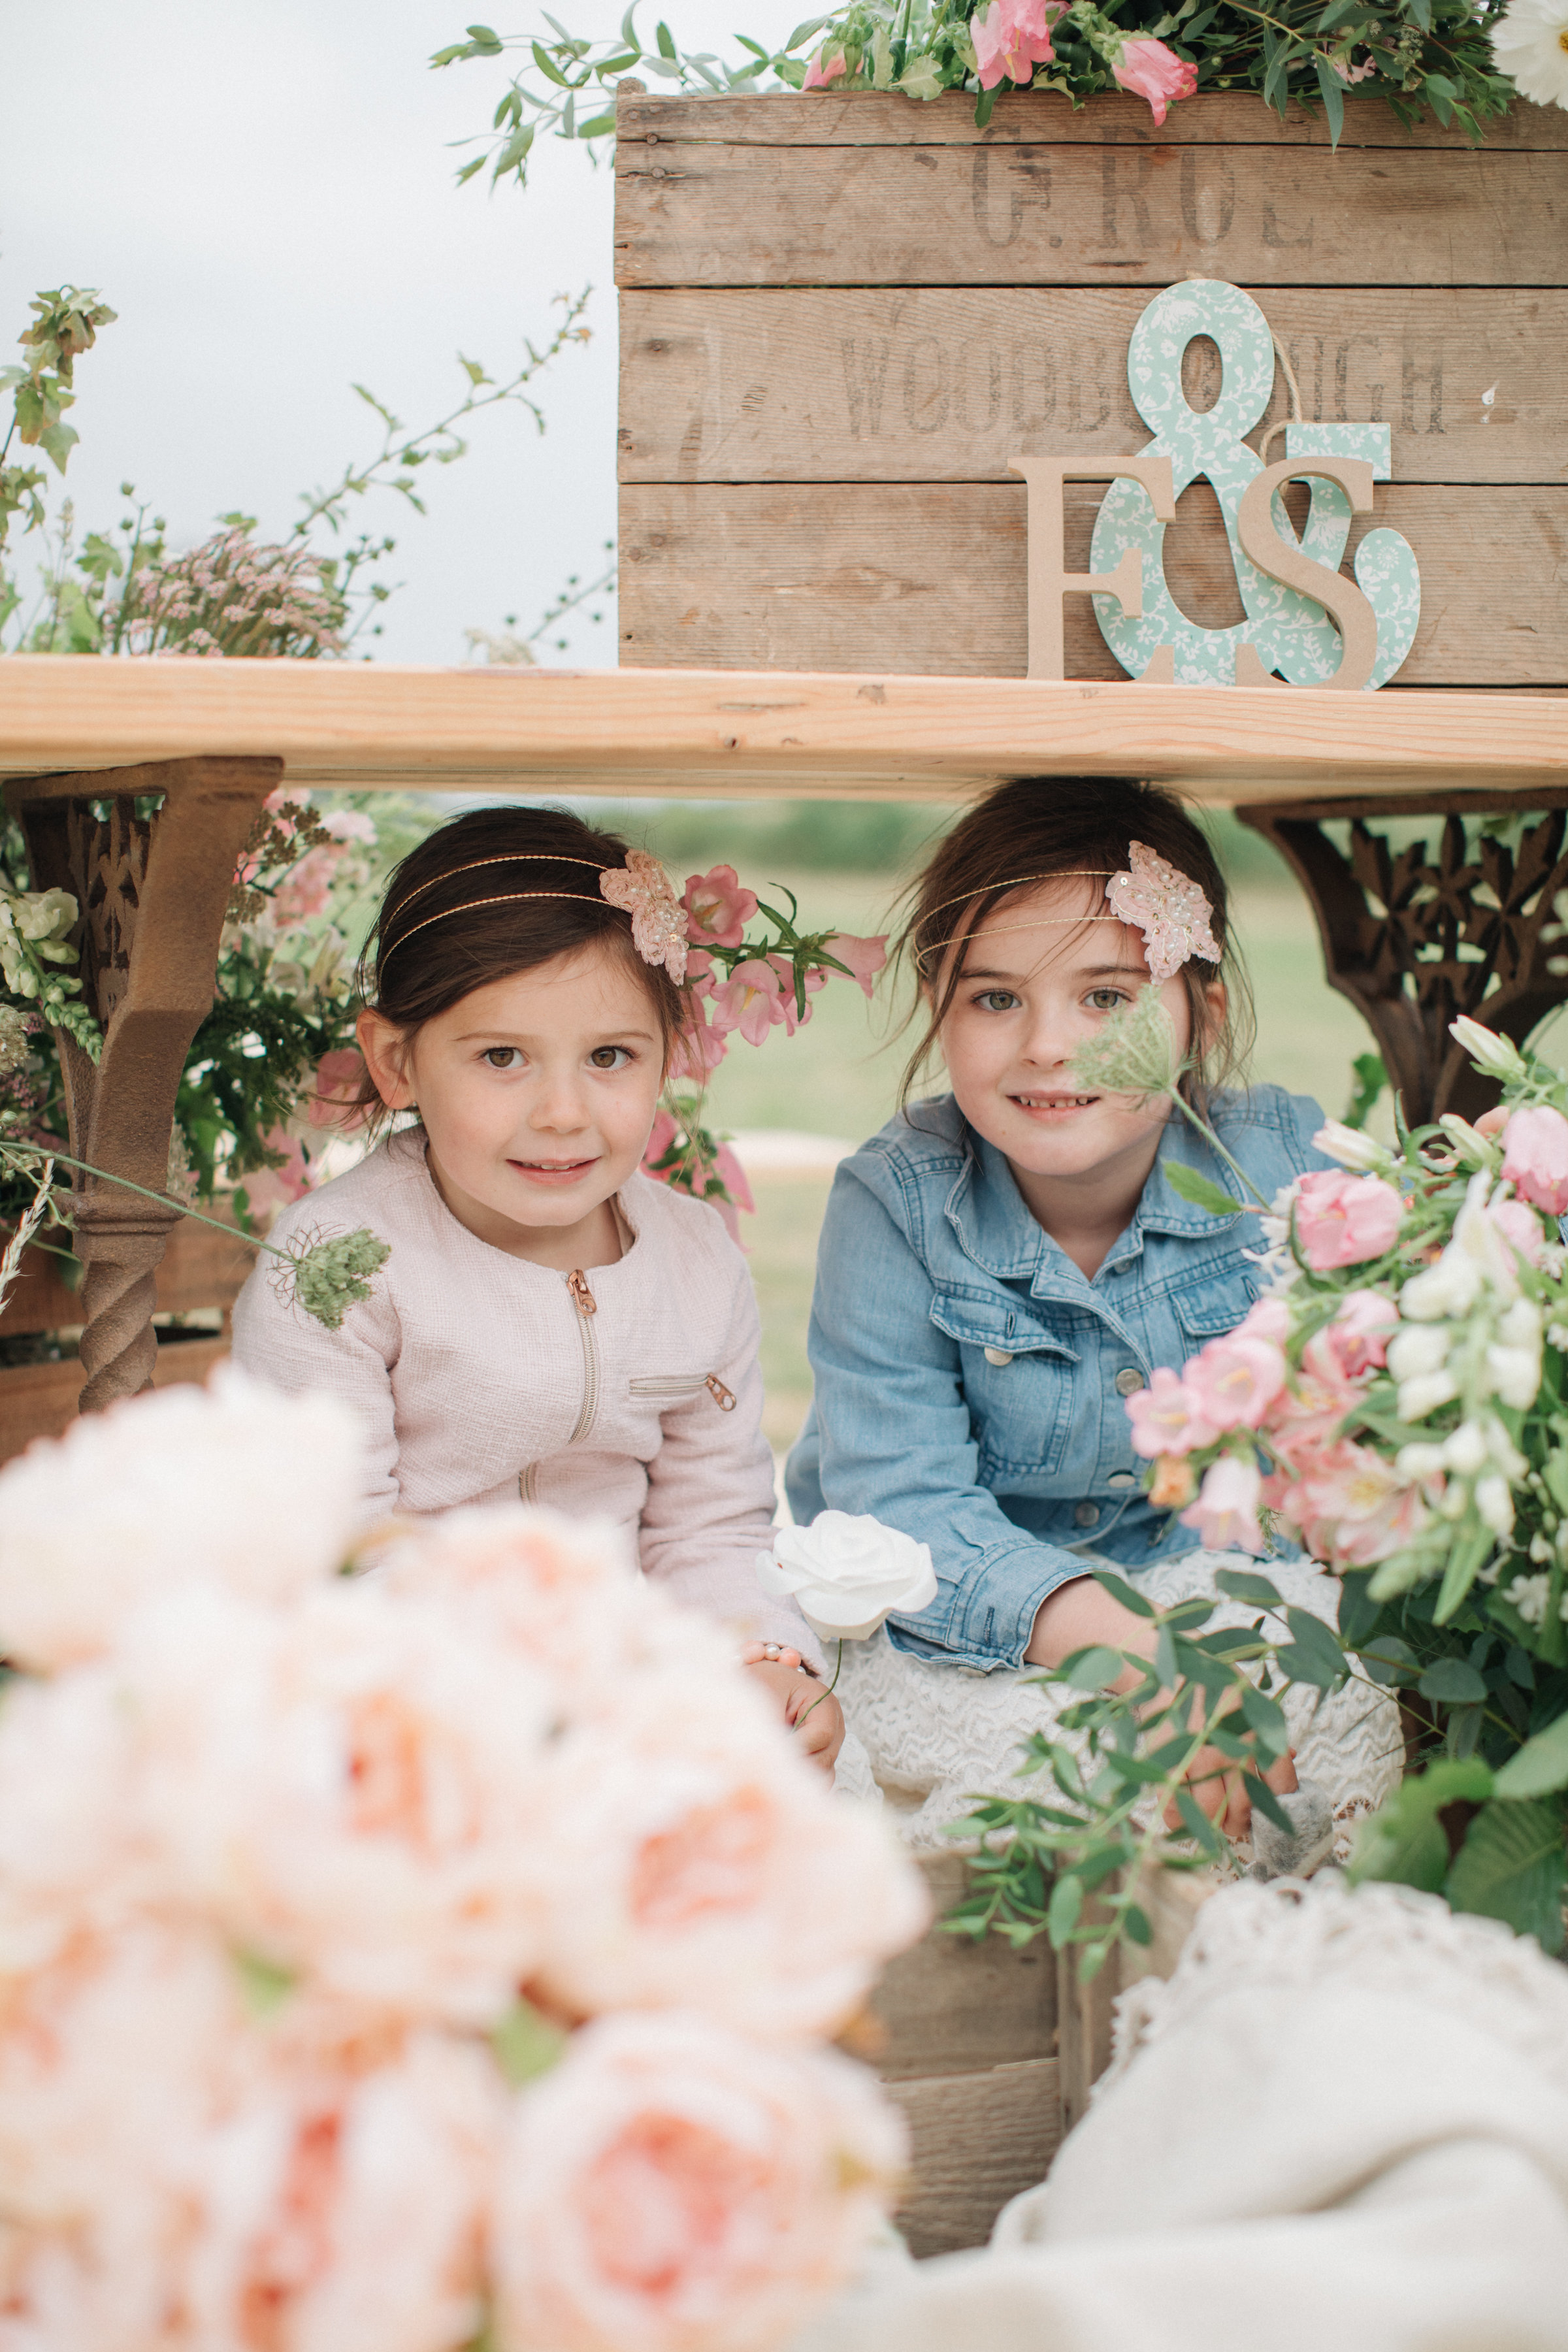 Steph & Ed's PapaKåta Sperry Tent wedding at home in Nottingham captured by M & J Photography: Child Wedding Guest Style